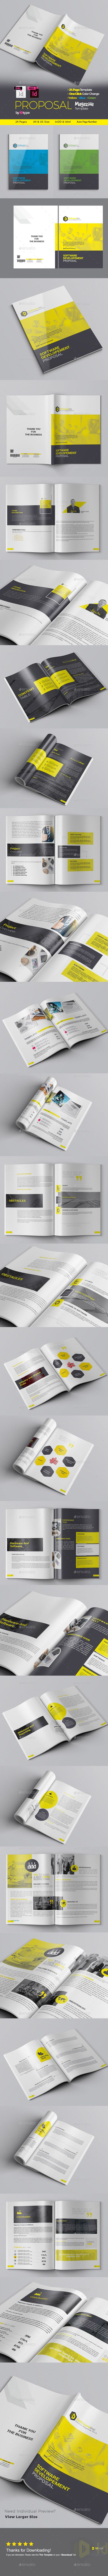 Software Development Proposal Brochure Template InDesign INDD - 24 Pages A4 & US Size